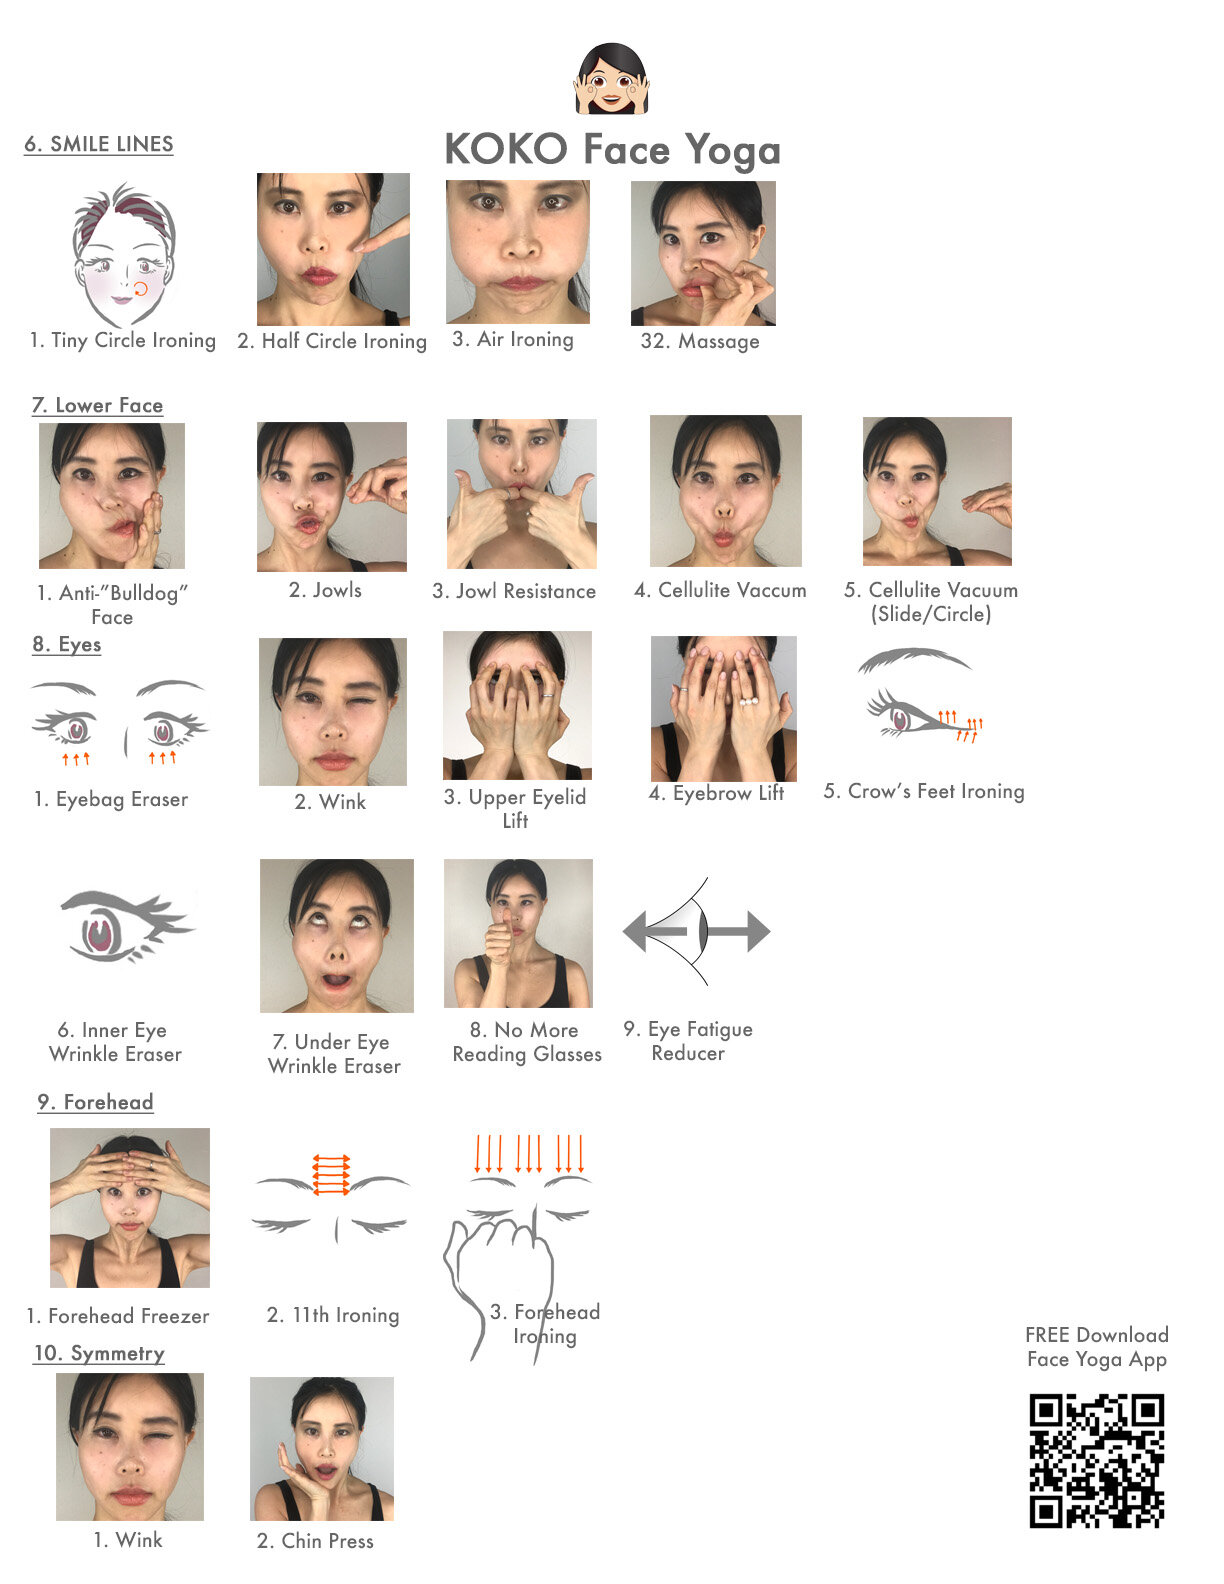 Face Yoga Poses Back Koko Oct 2019.jpg